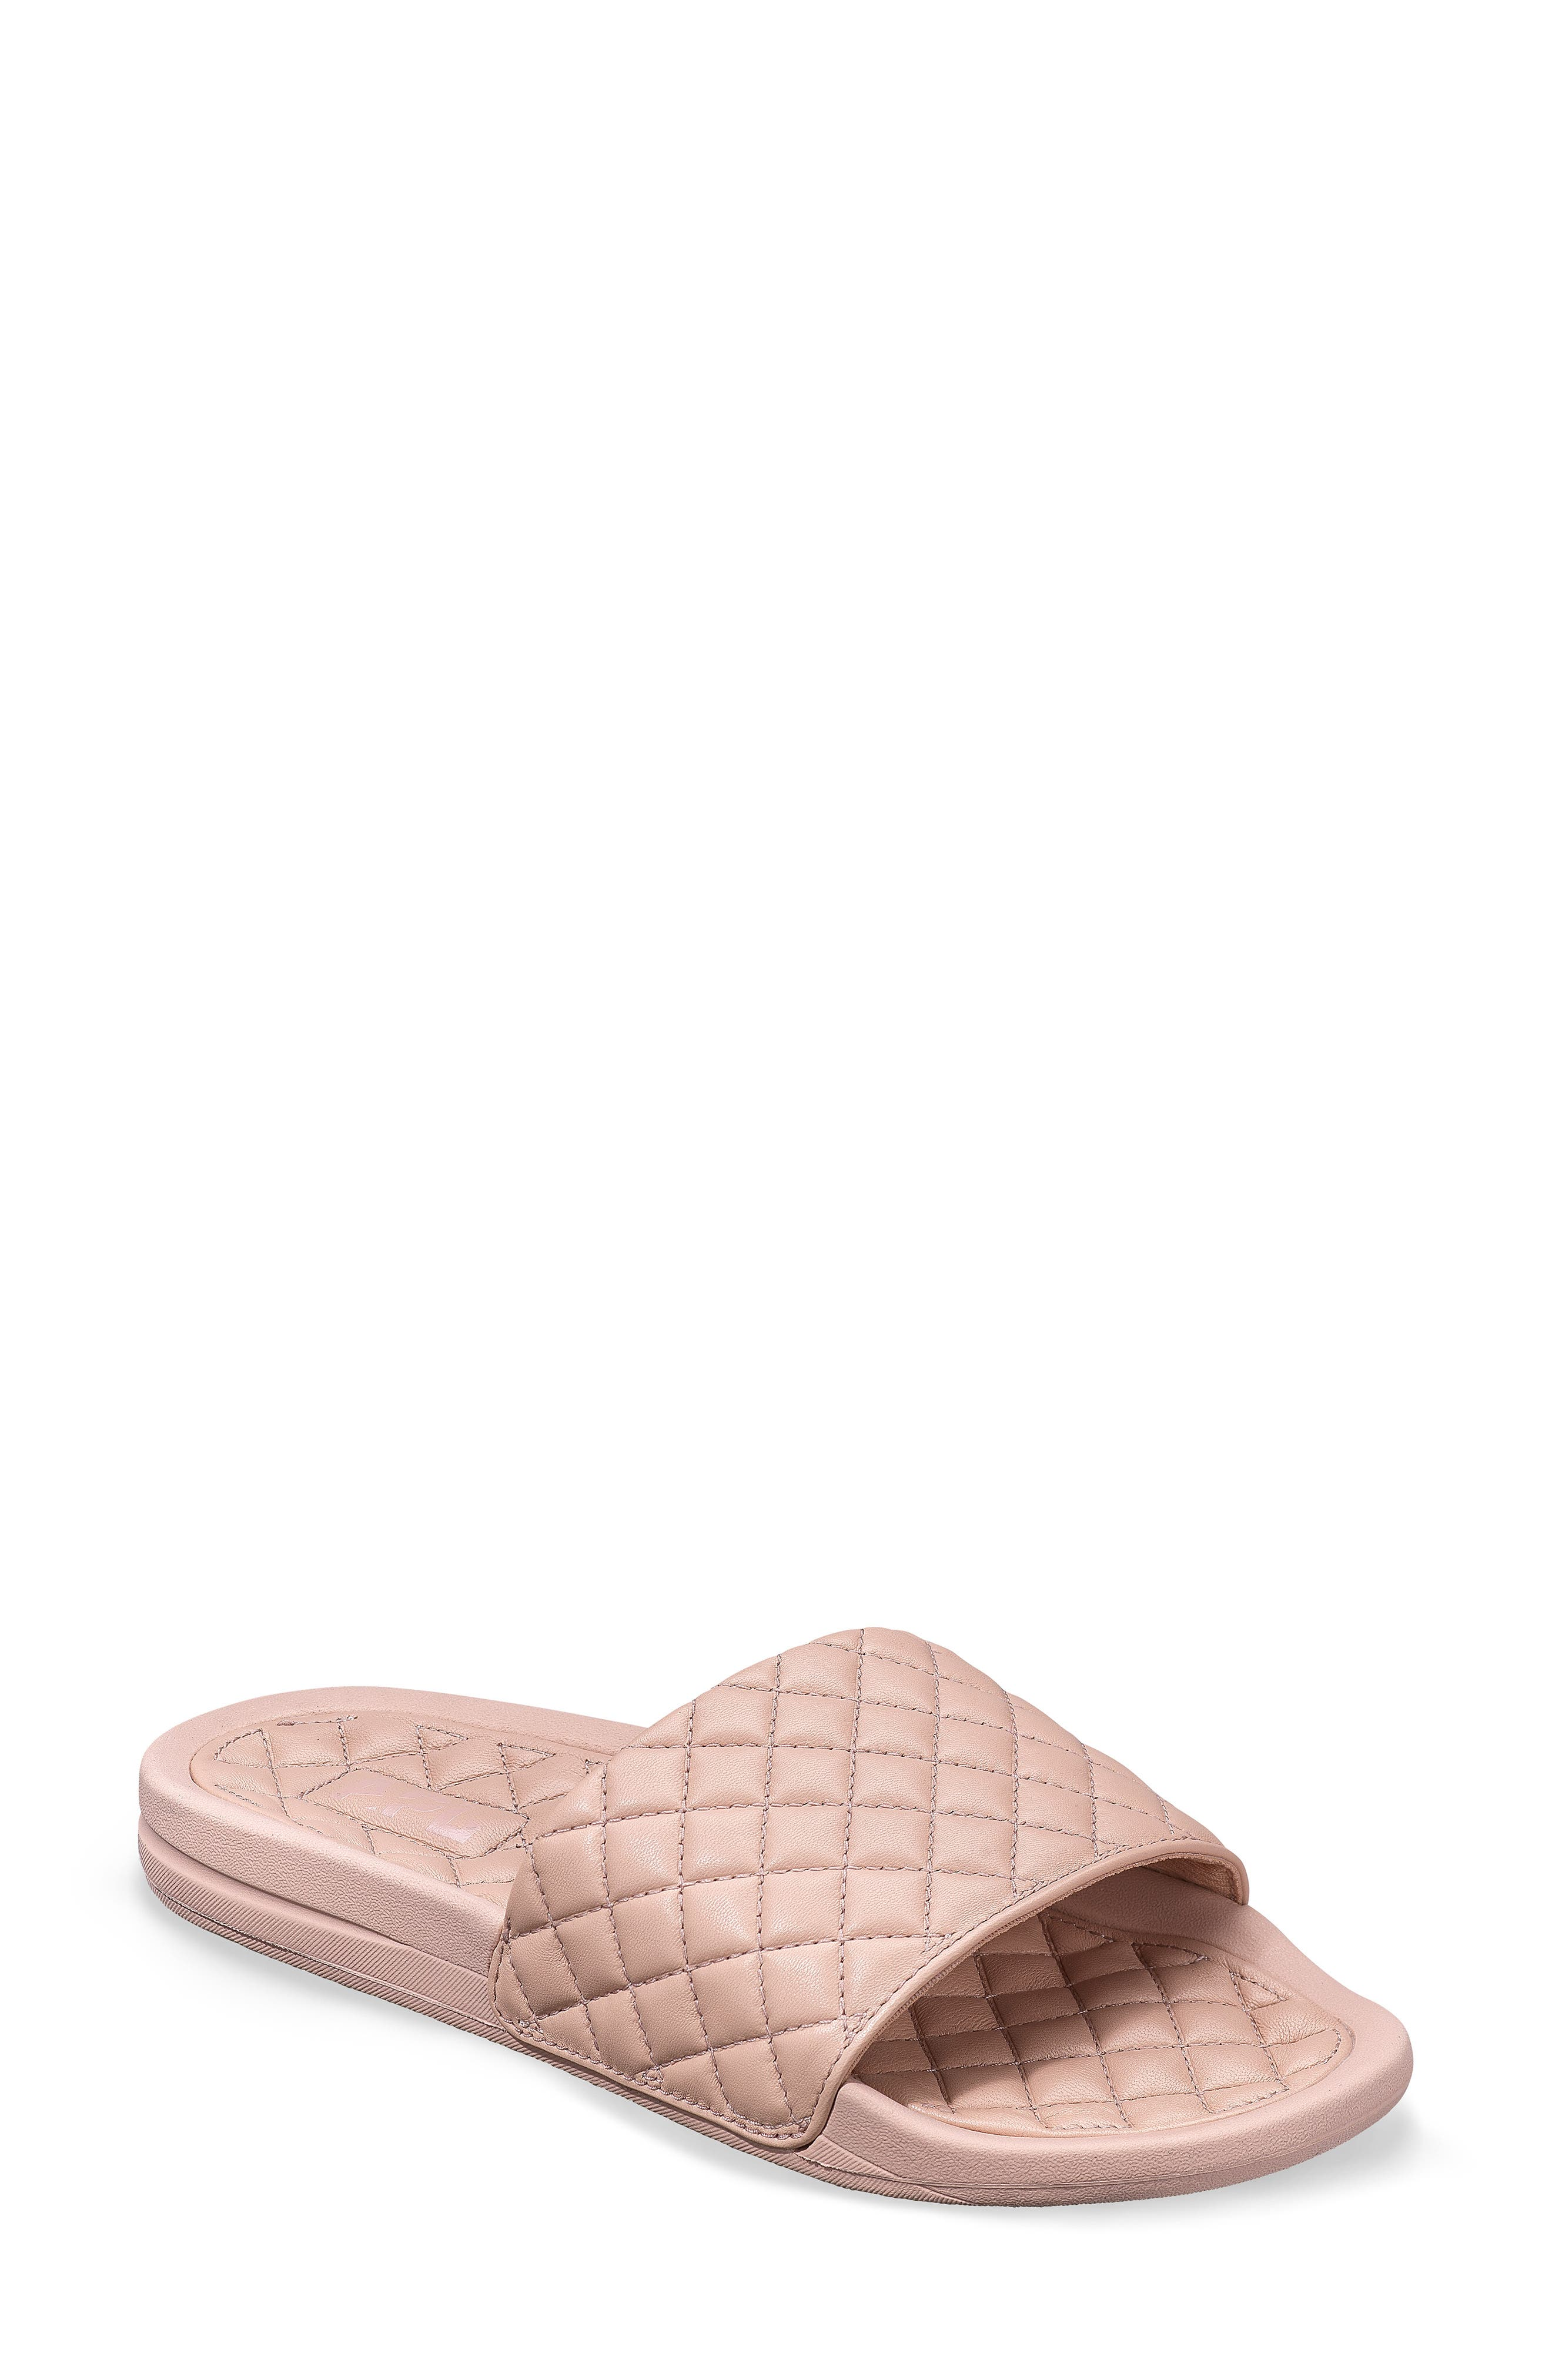 Lusso Quilted Slide Sandal